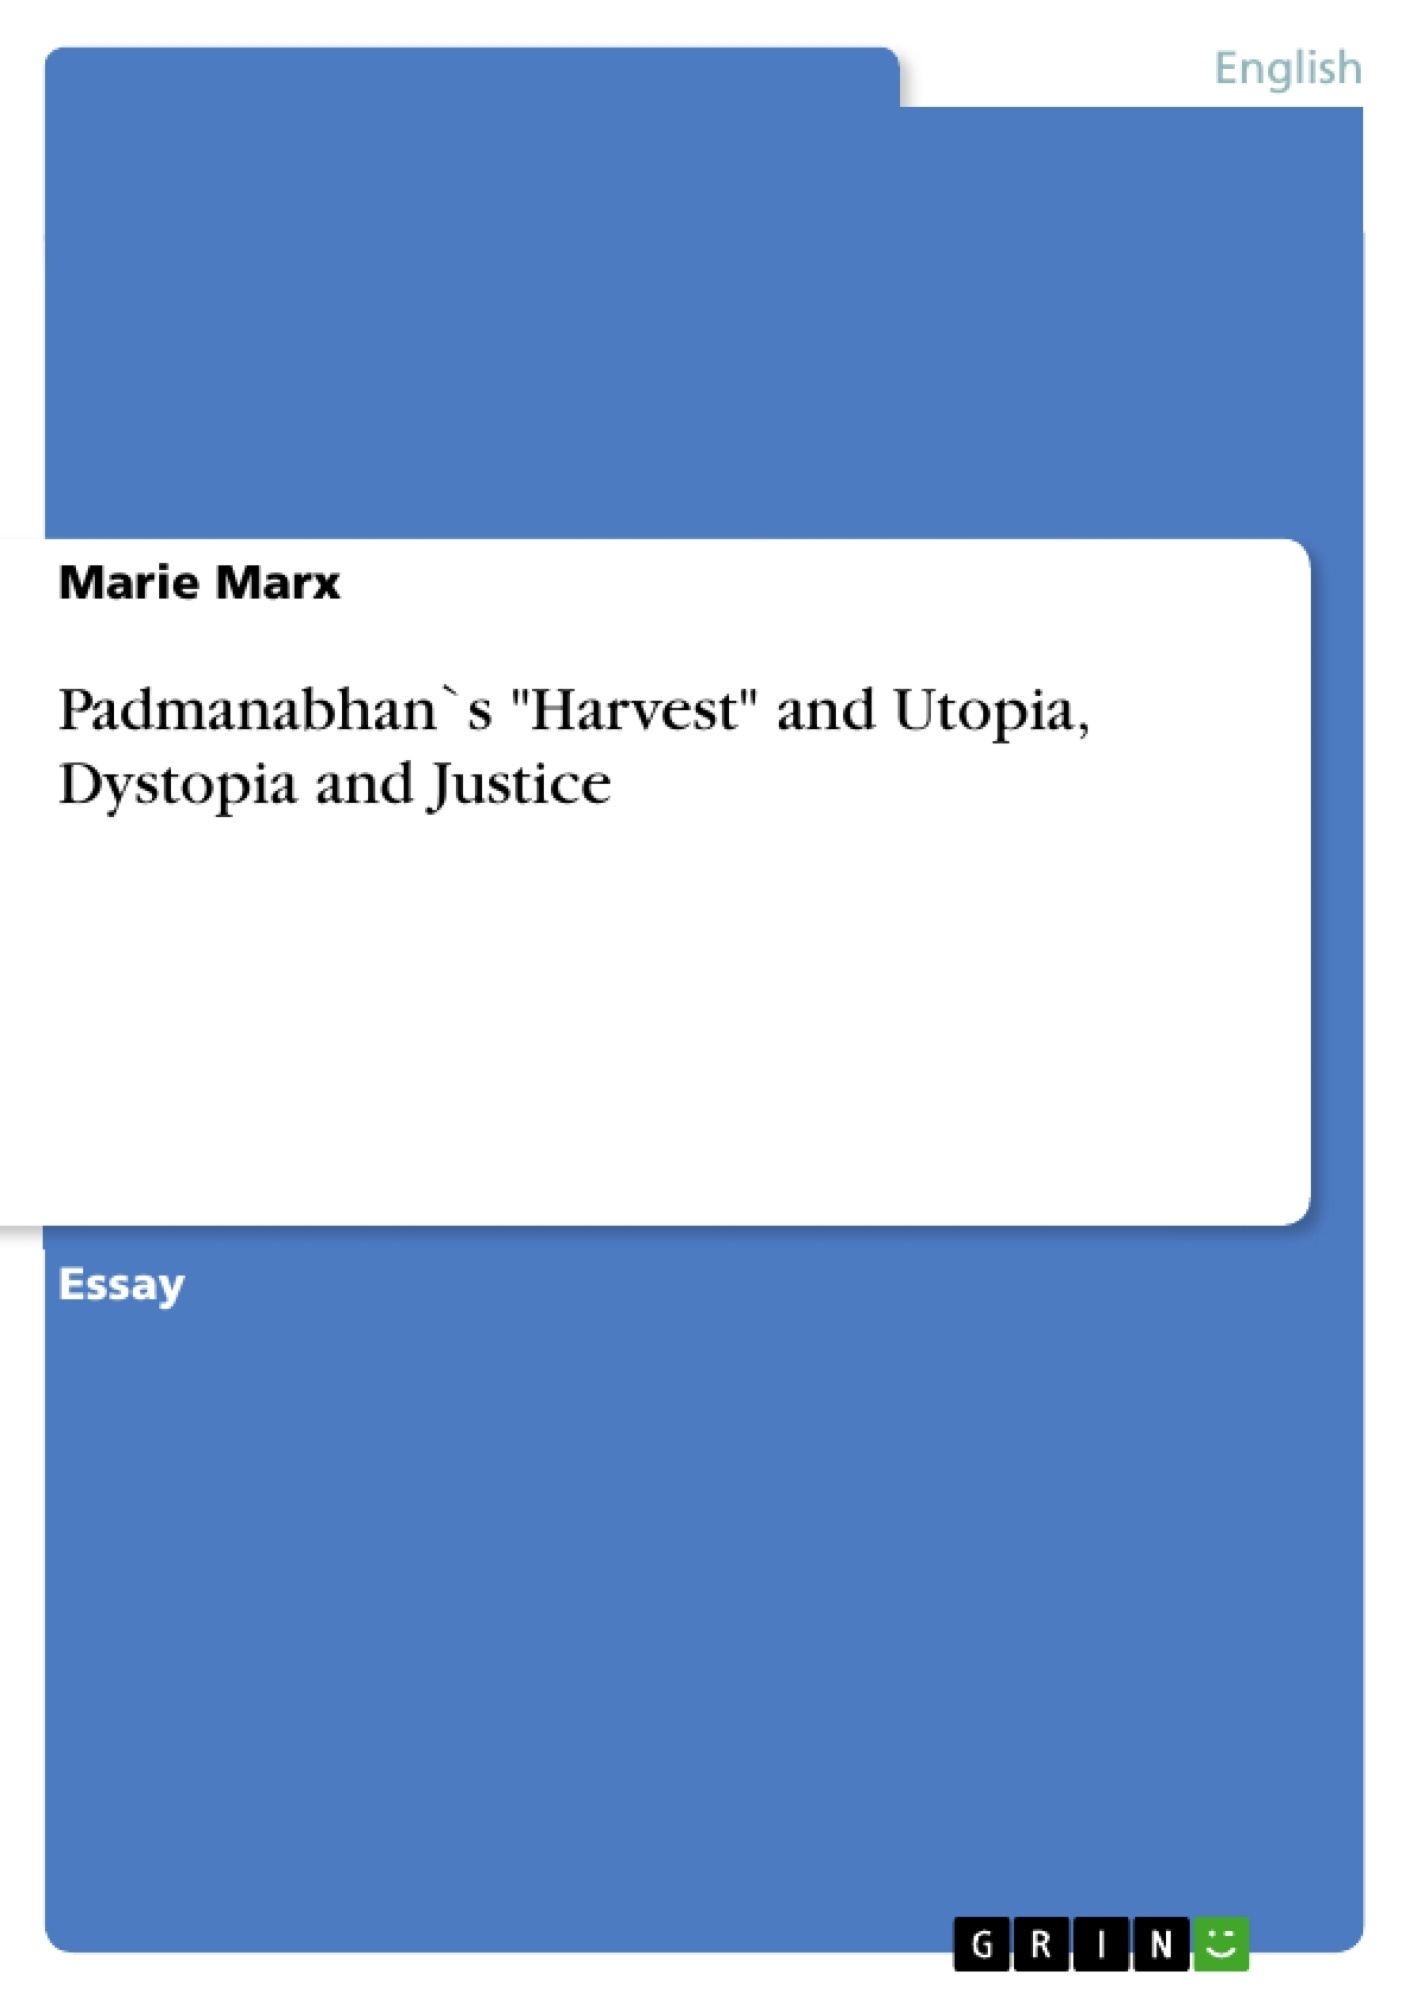 essay on utopia by thomas more Sir thomas more =student essay : e-books sir thomas more and the art of dialogue - rilakowski a slave state: society in sir thomas more's utopia - alexander.